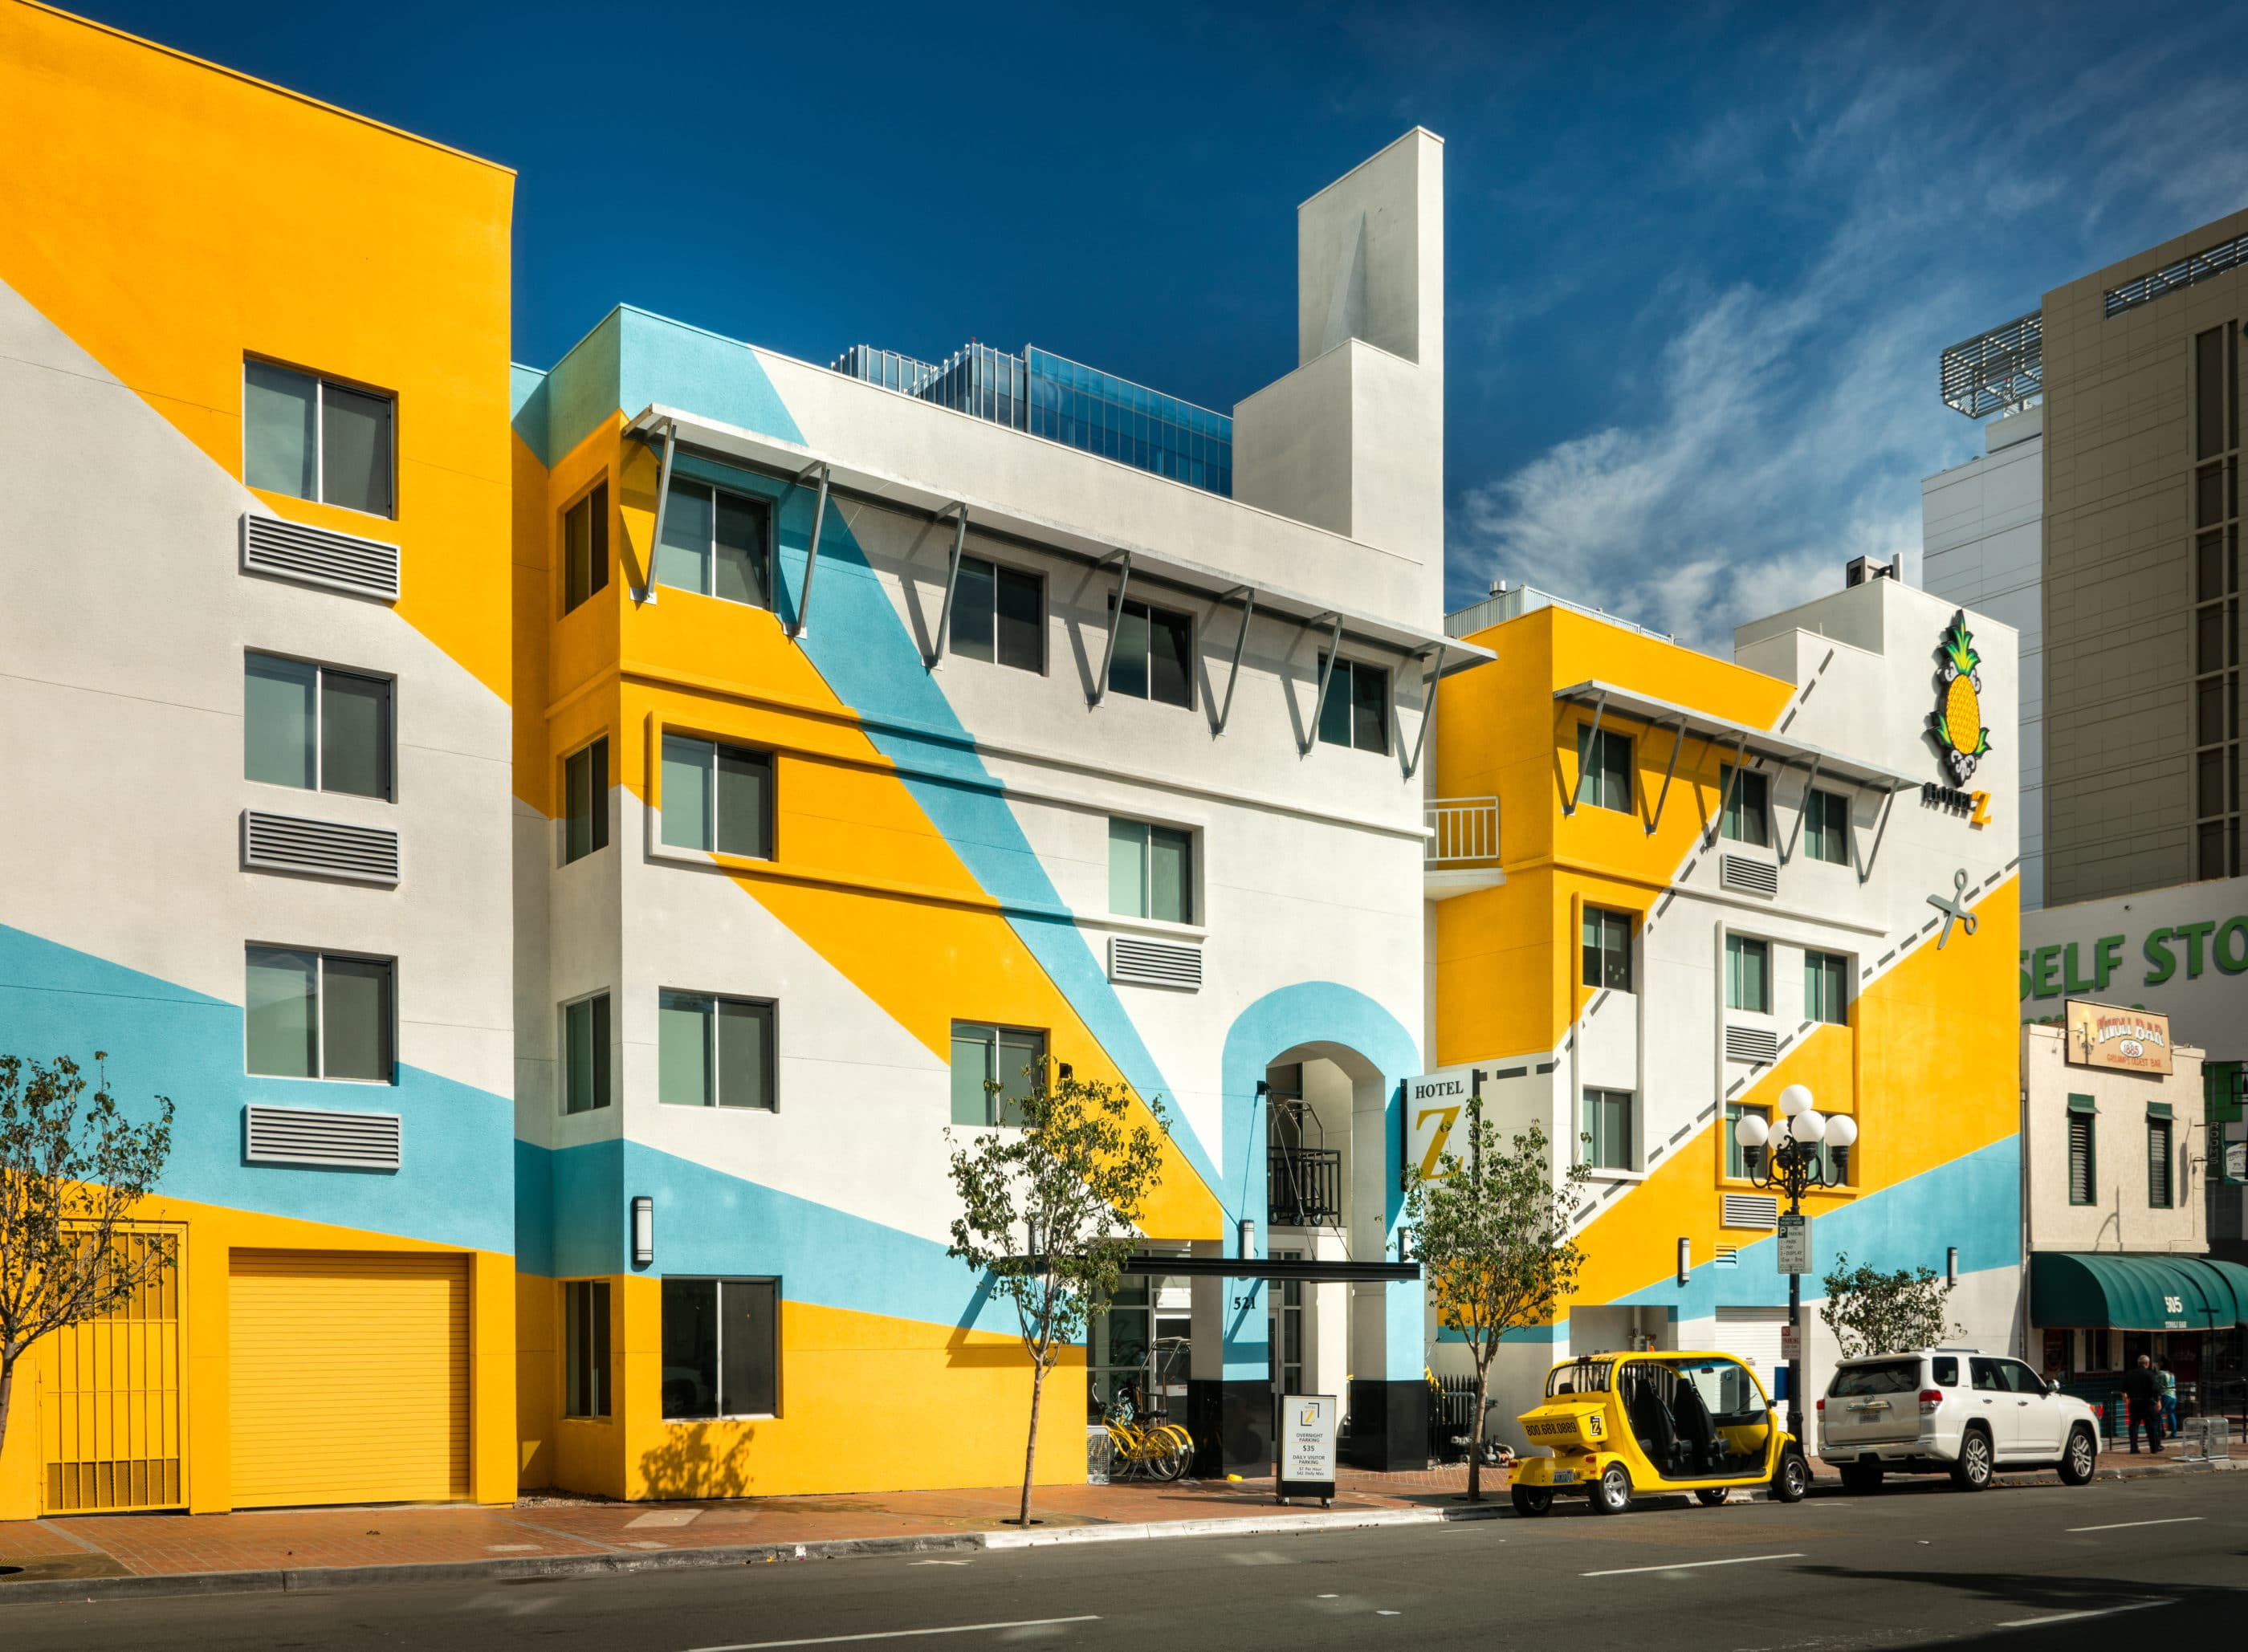 The bright blue and yellow exterior of Hotel Z – San Diego, one of the most eclectic boutique hotels in San Diego.